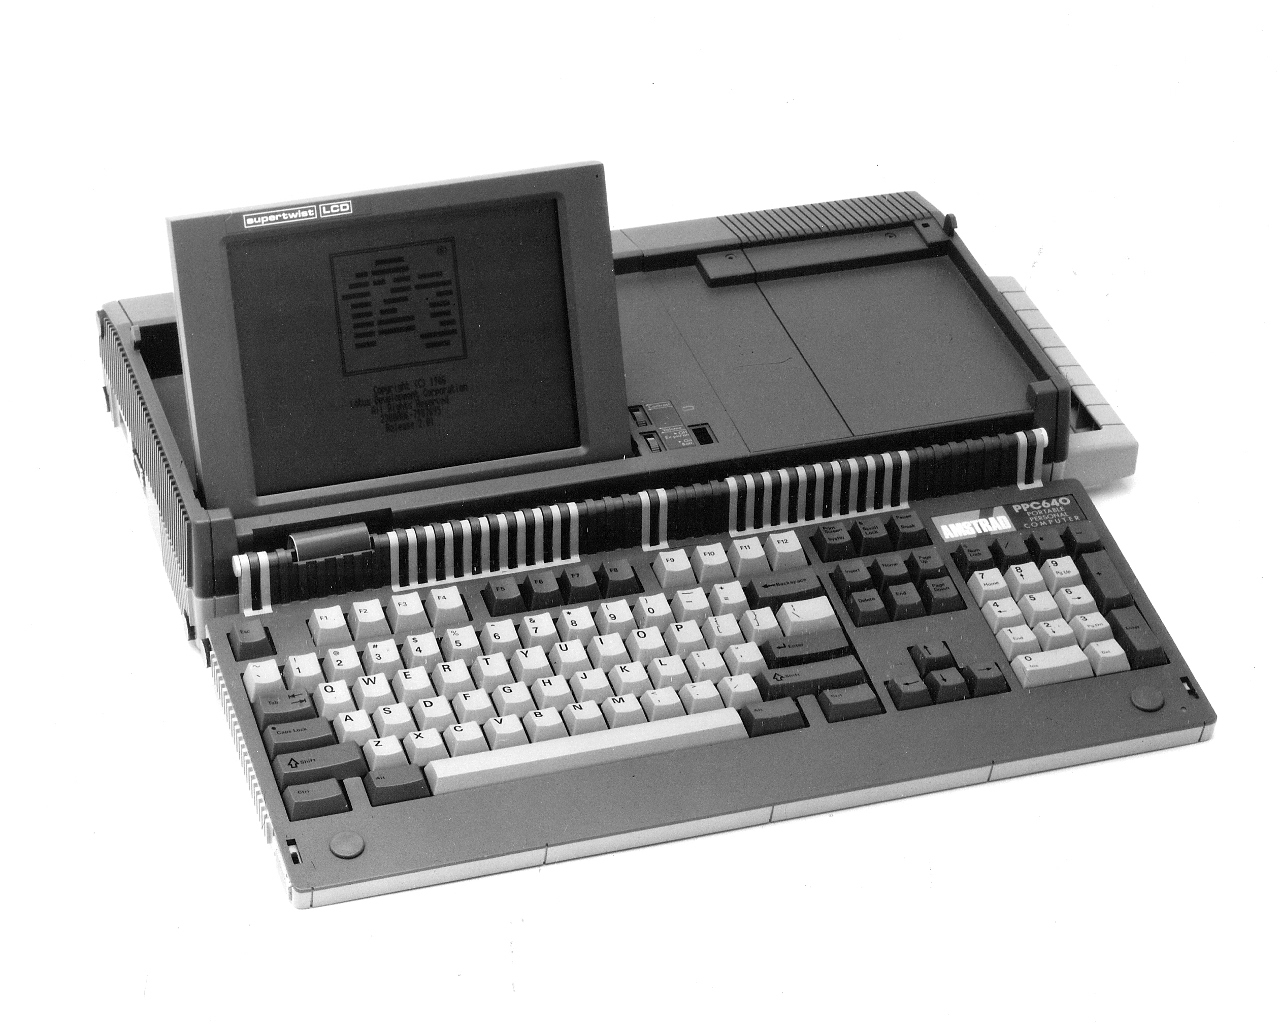 My first computer; an Amstrad 640K. There was no internal hard disk. The system operated from two 720kb floppy disks.